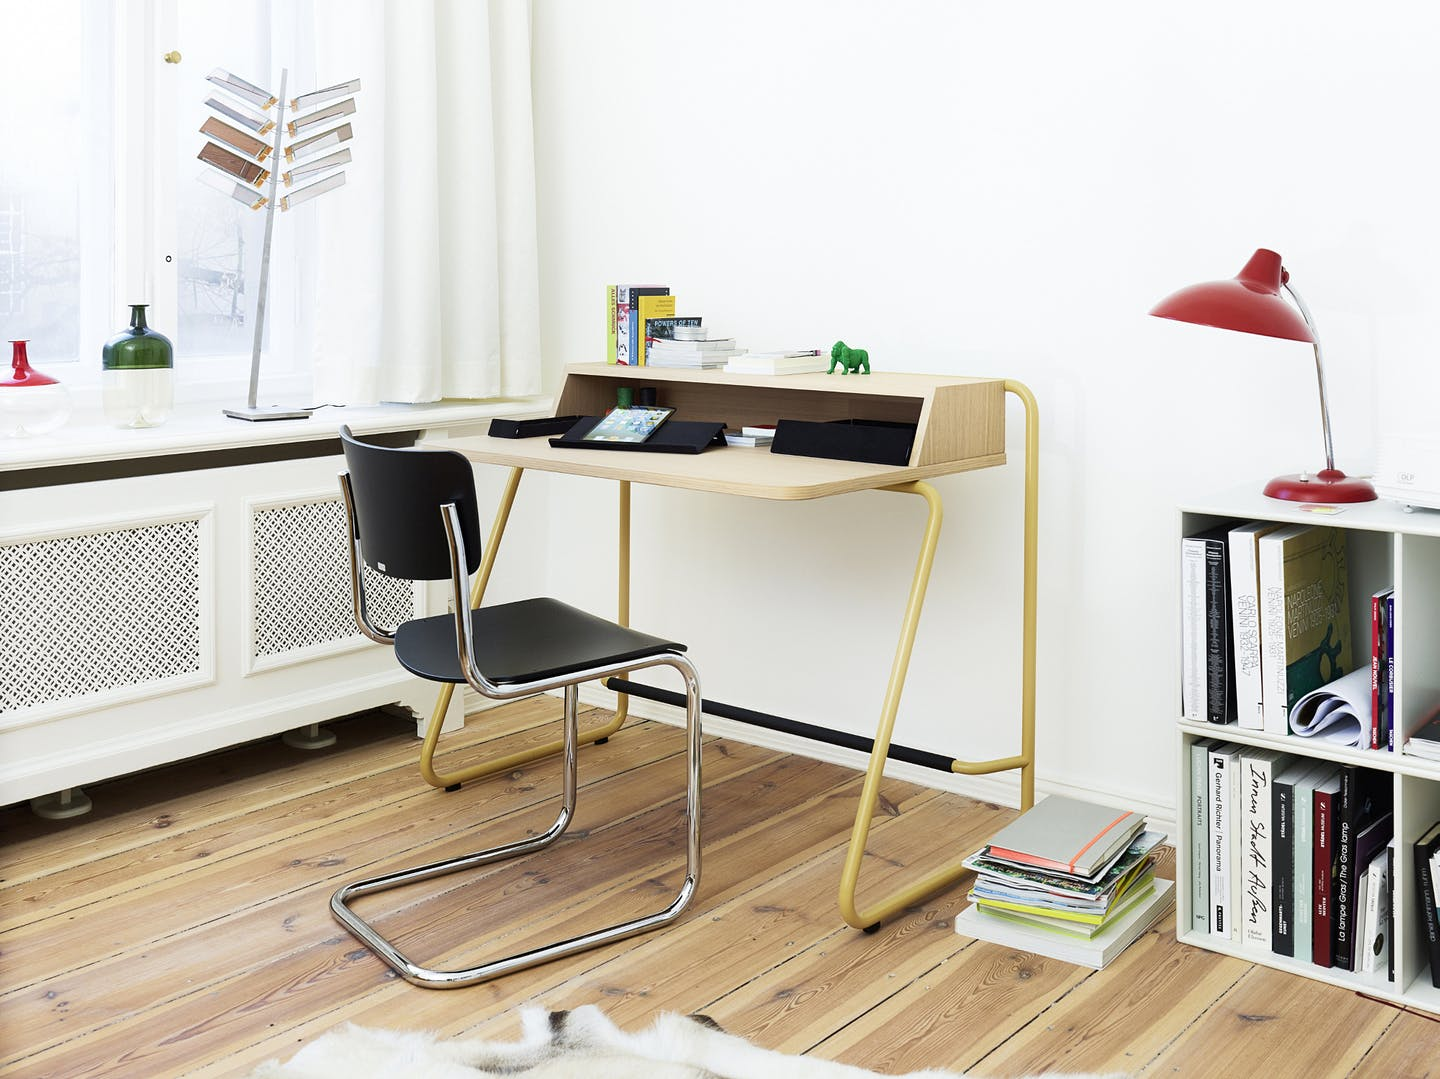 Thonet design classics in the home office